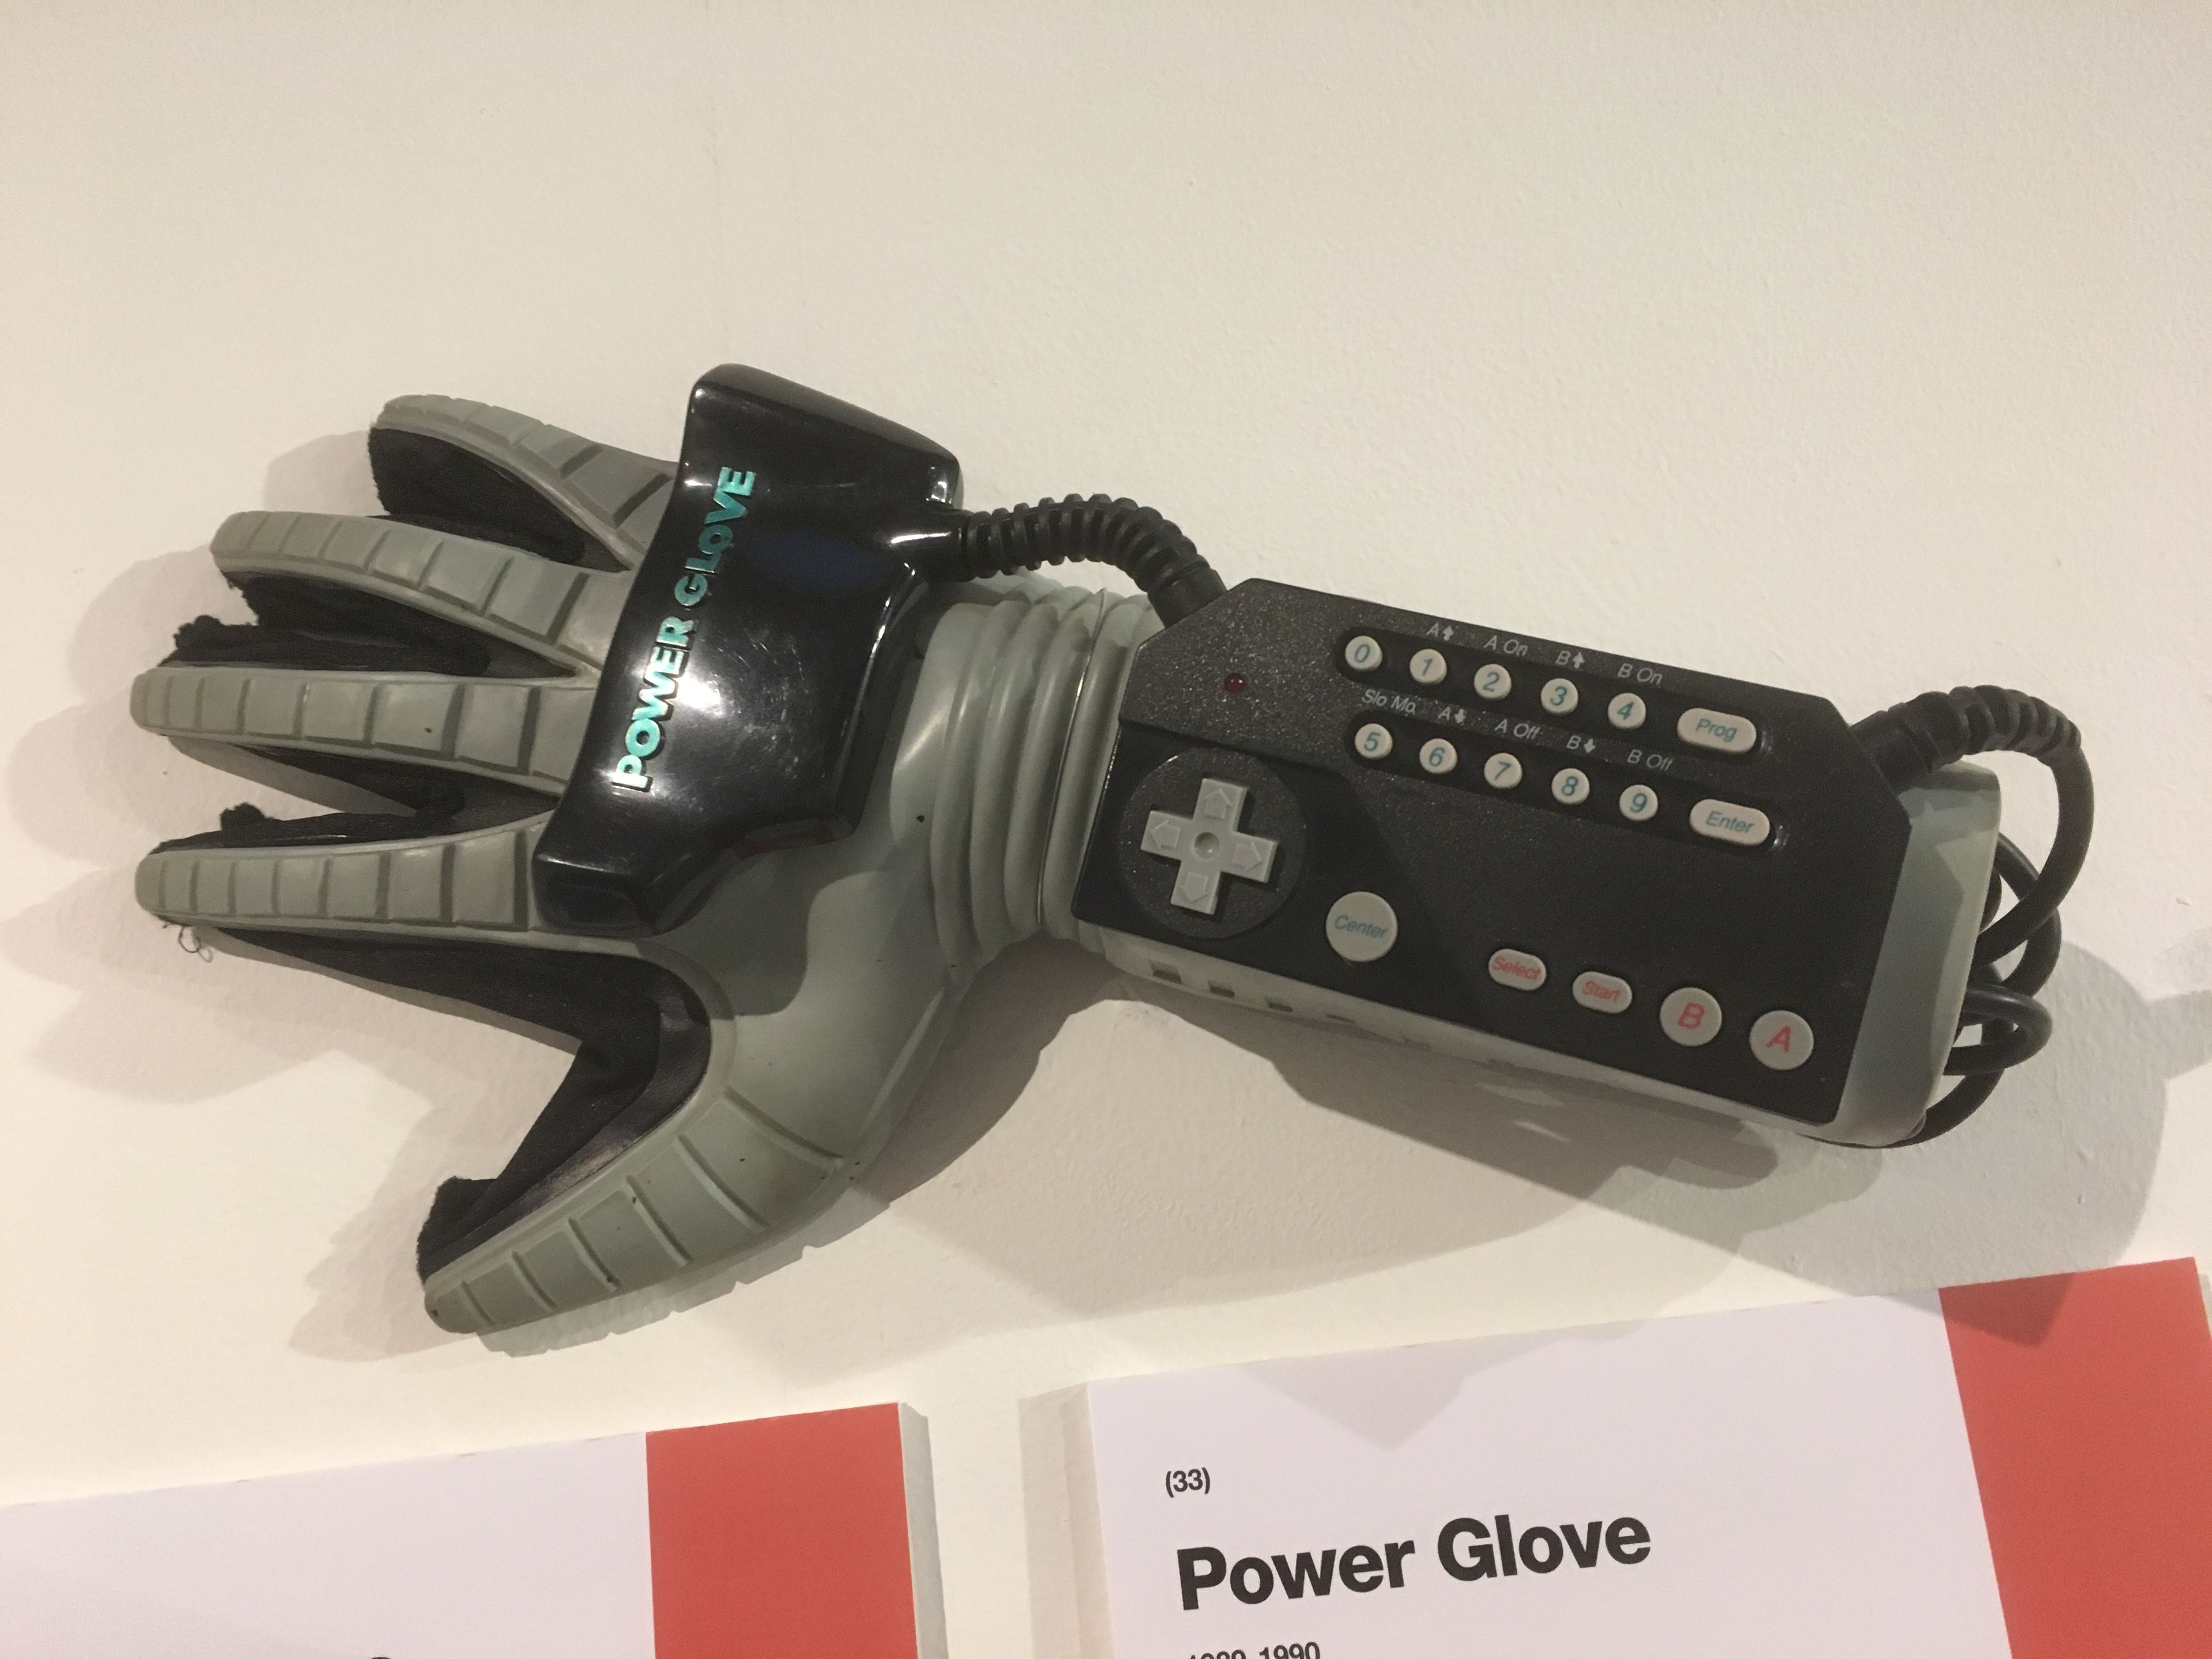 The Power Glove, first seen in the movie The Wizard. I